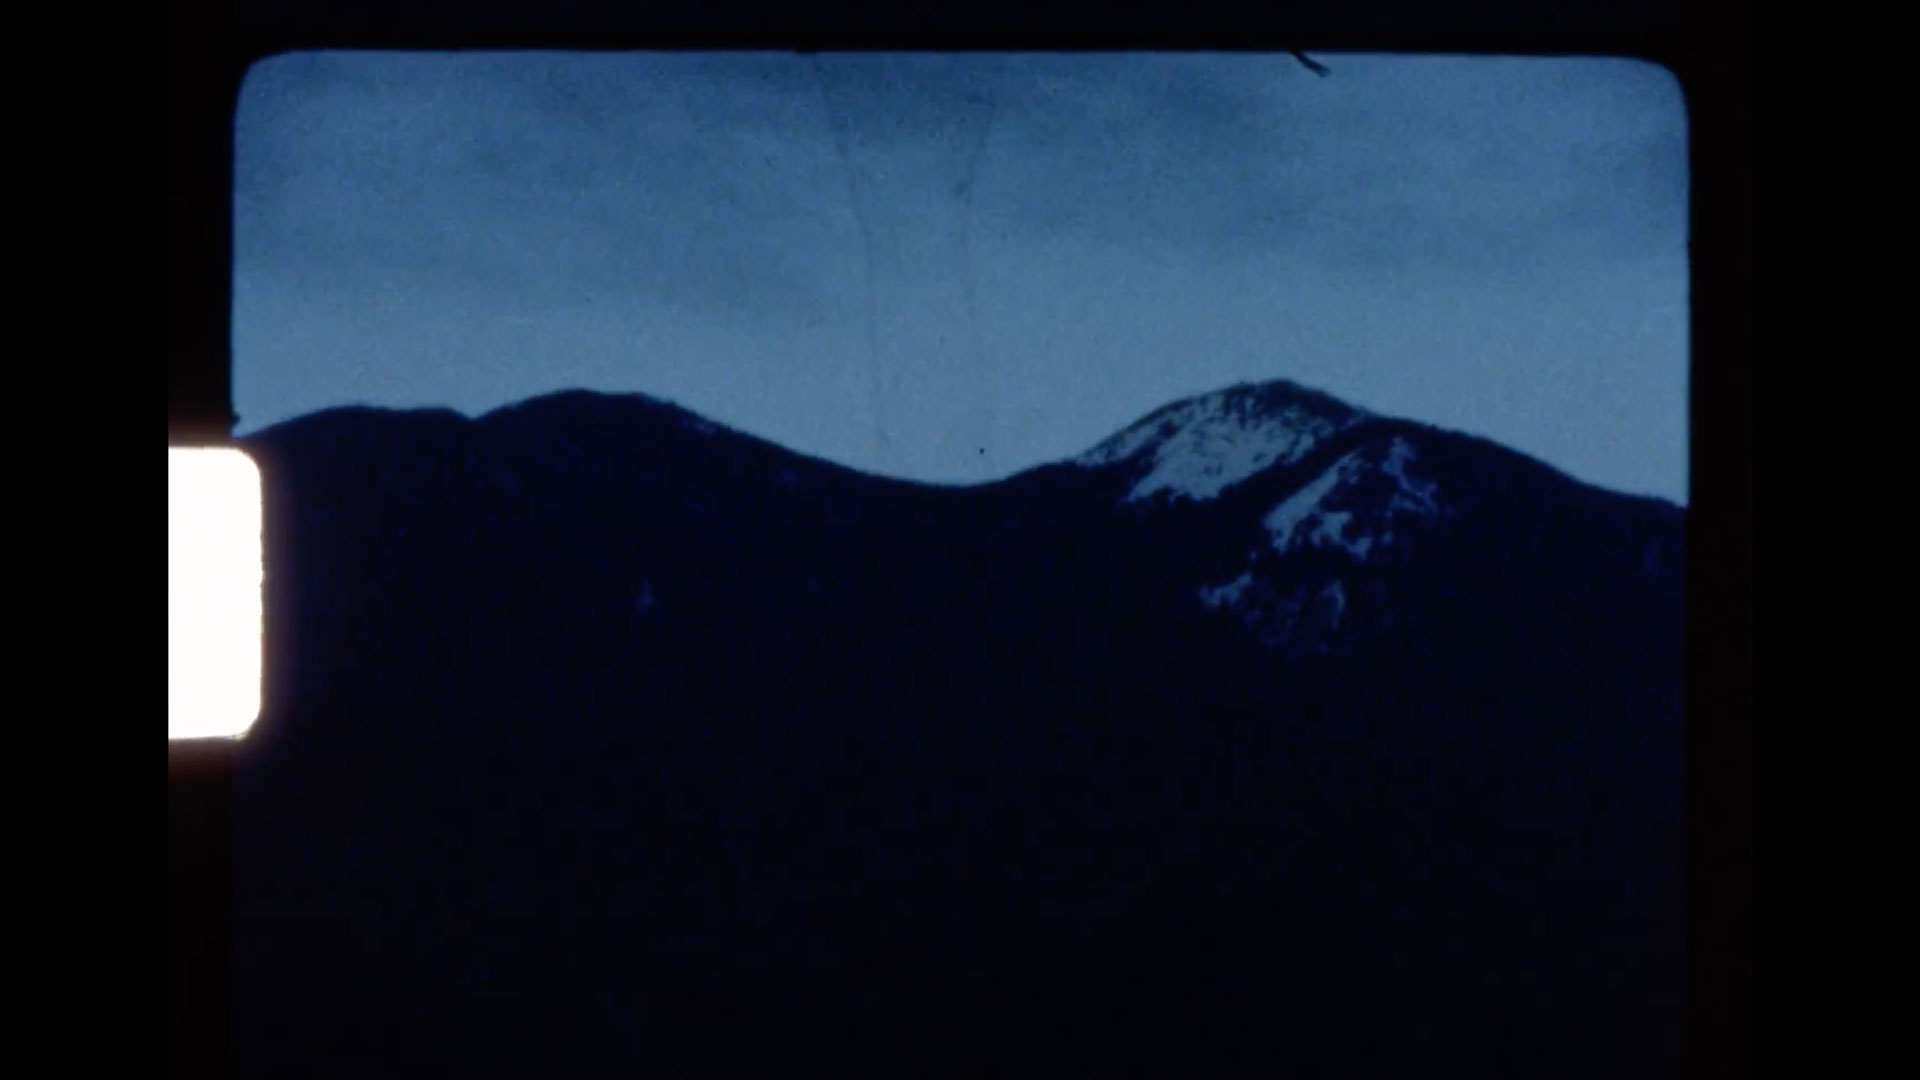 A Super 8 film reel clip of a mountain from Goldilocks